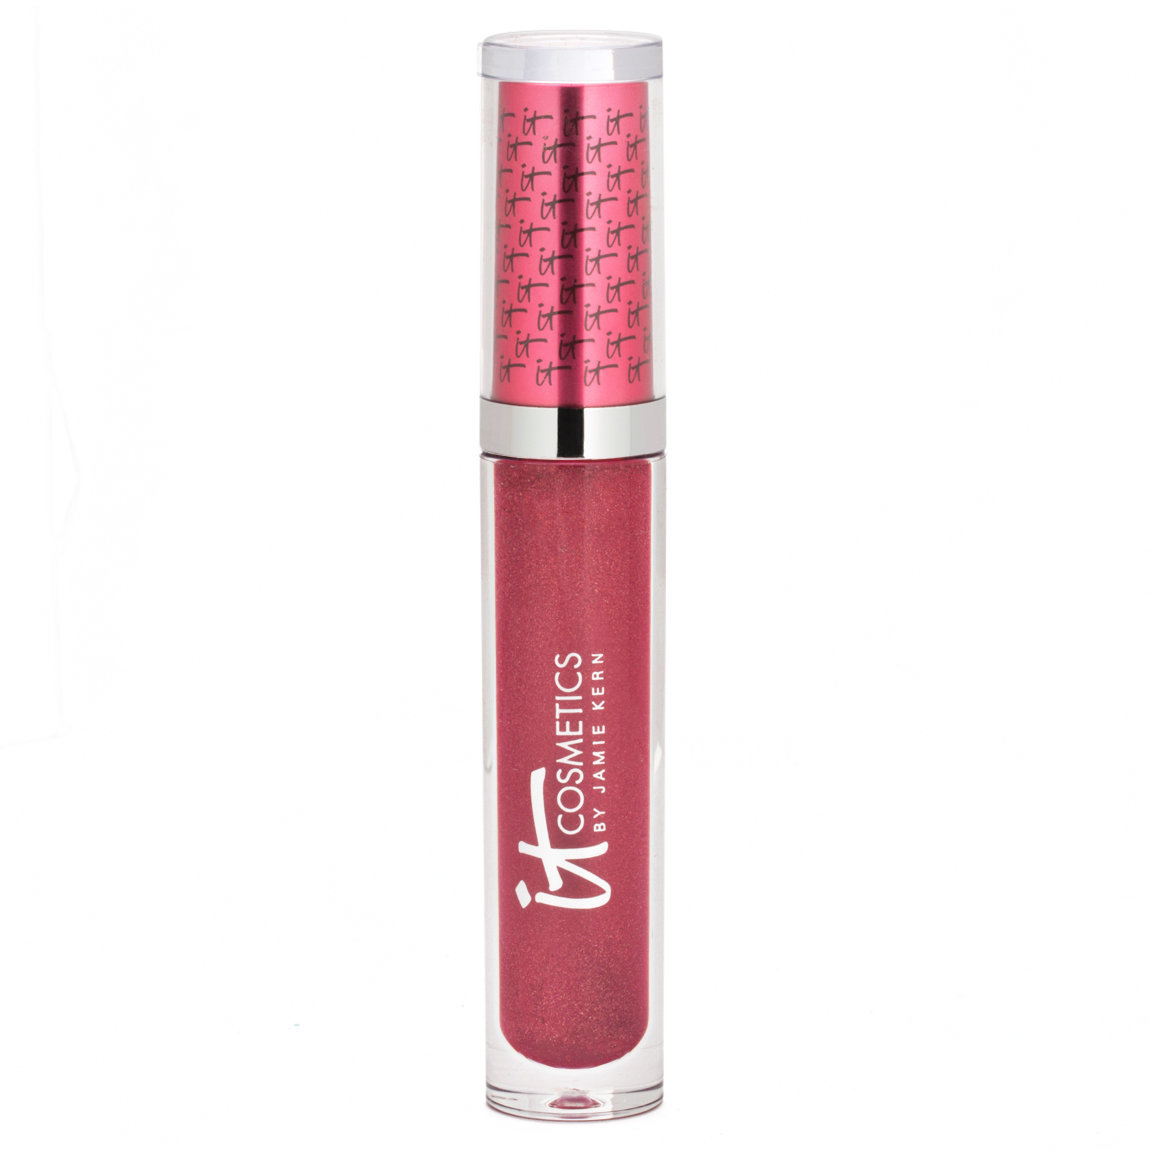 IT Cosmetics  Vitality Lip Flush Hydrating Gloss Stain Inspiring Red